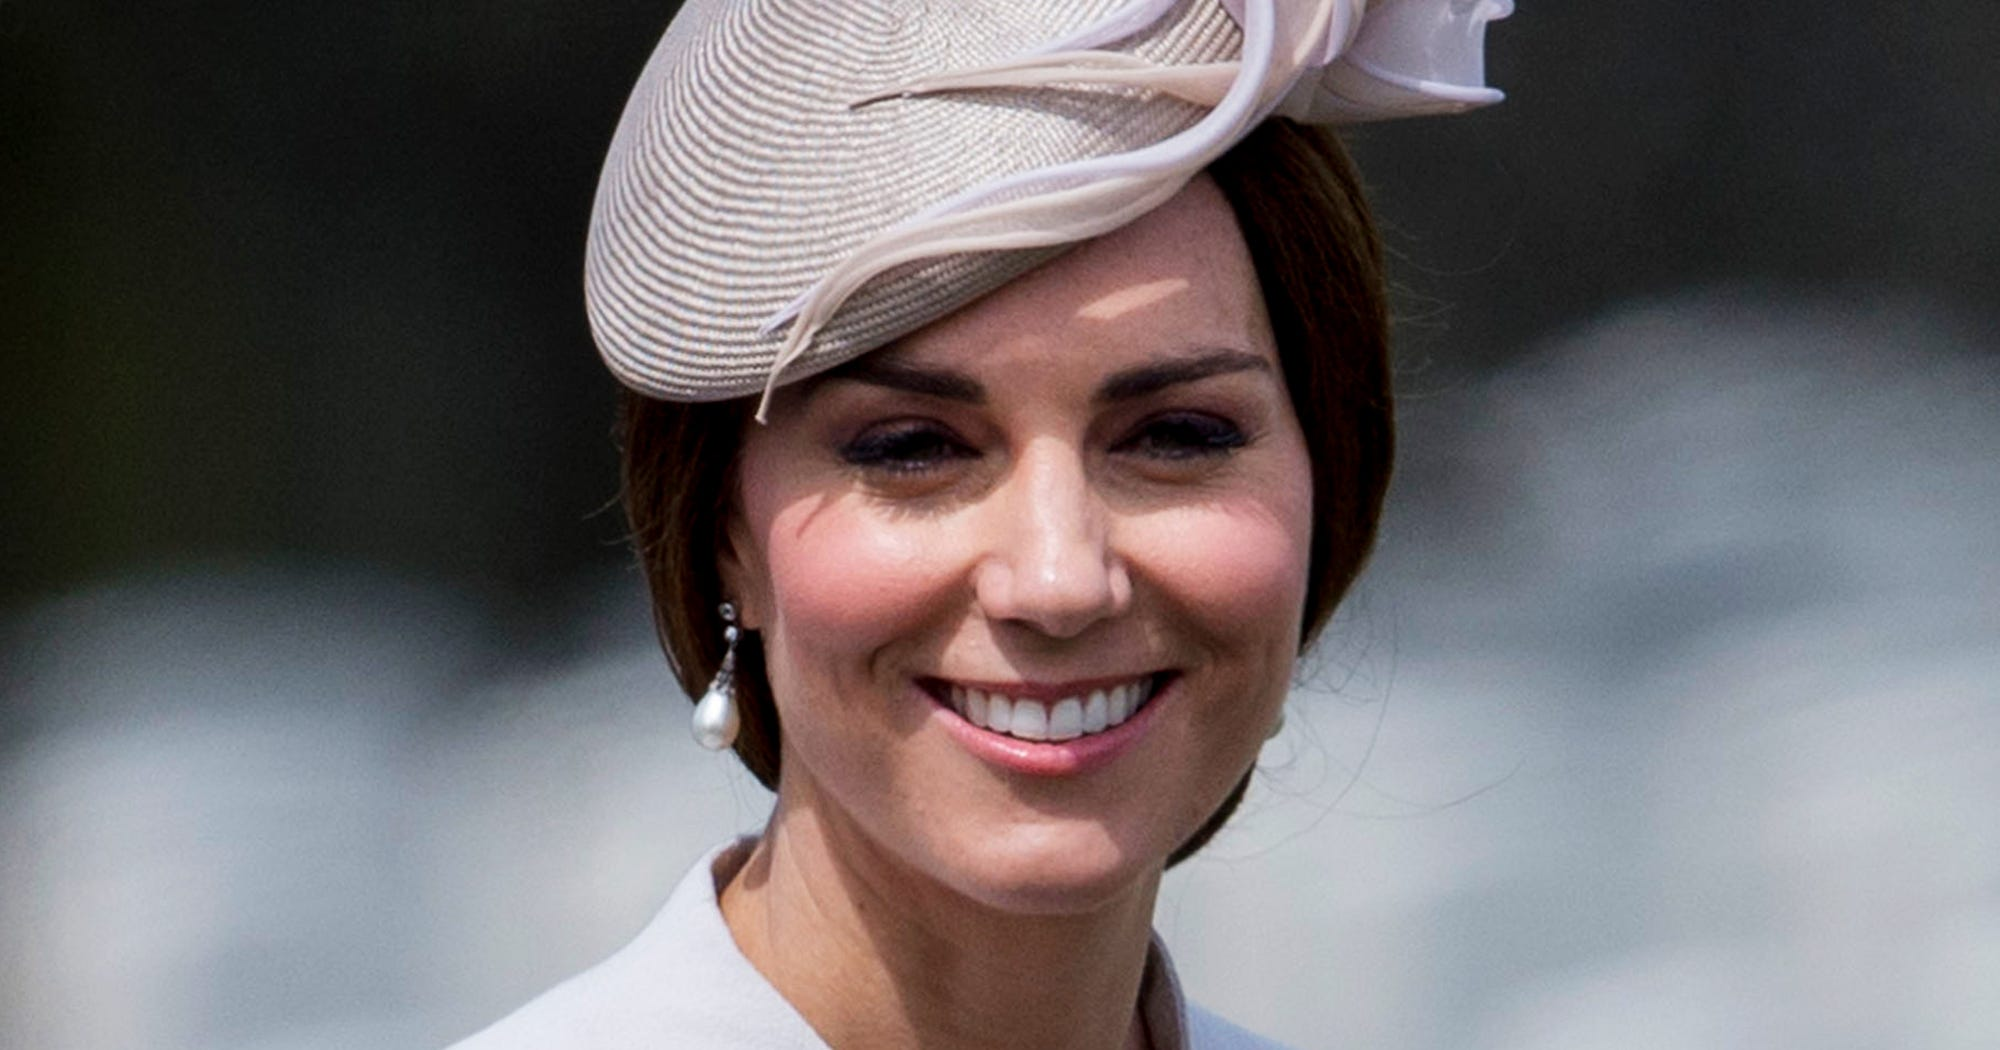 Did You Know Kate Middleton's Necklace Is A Secret Salute To Princess Diana?